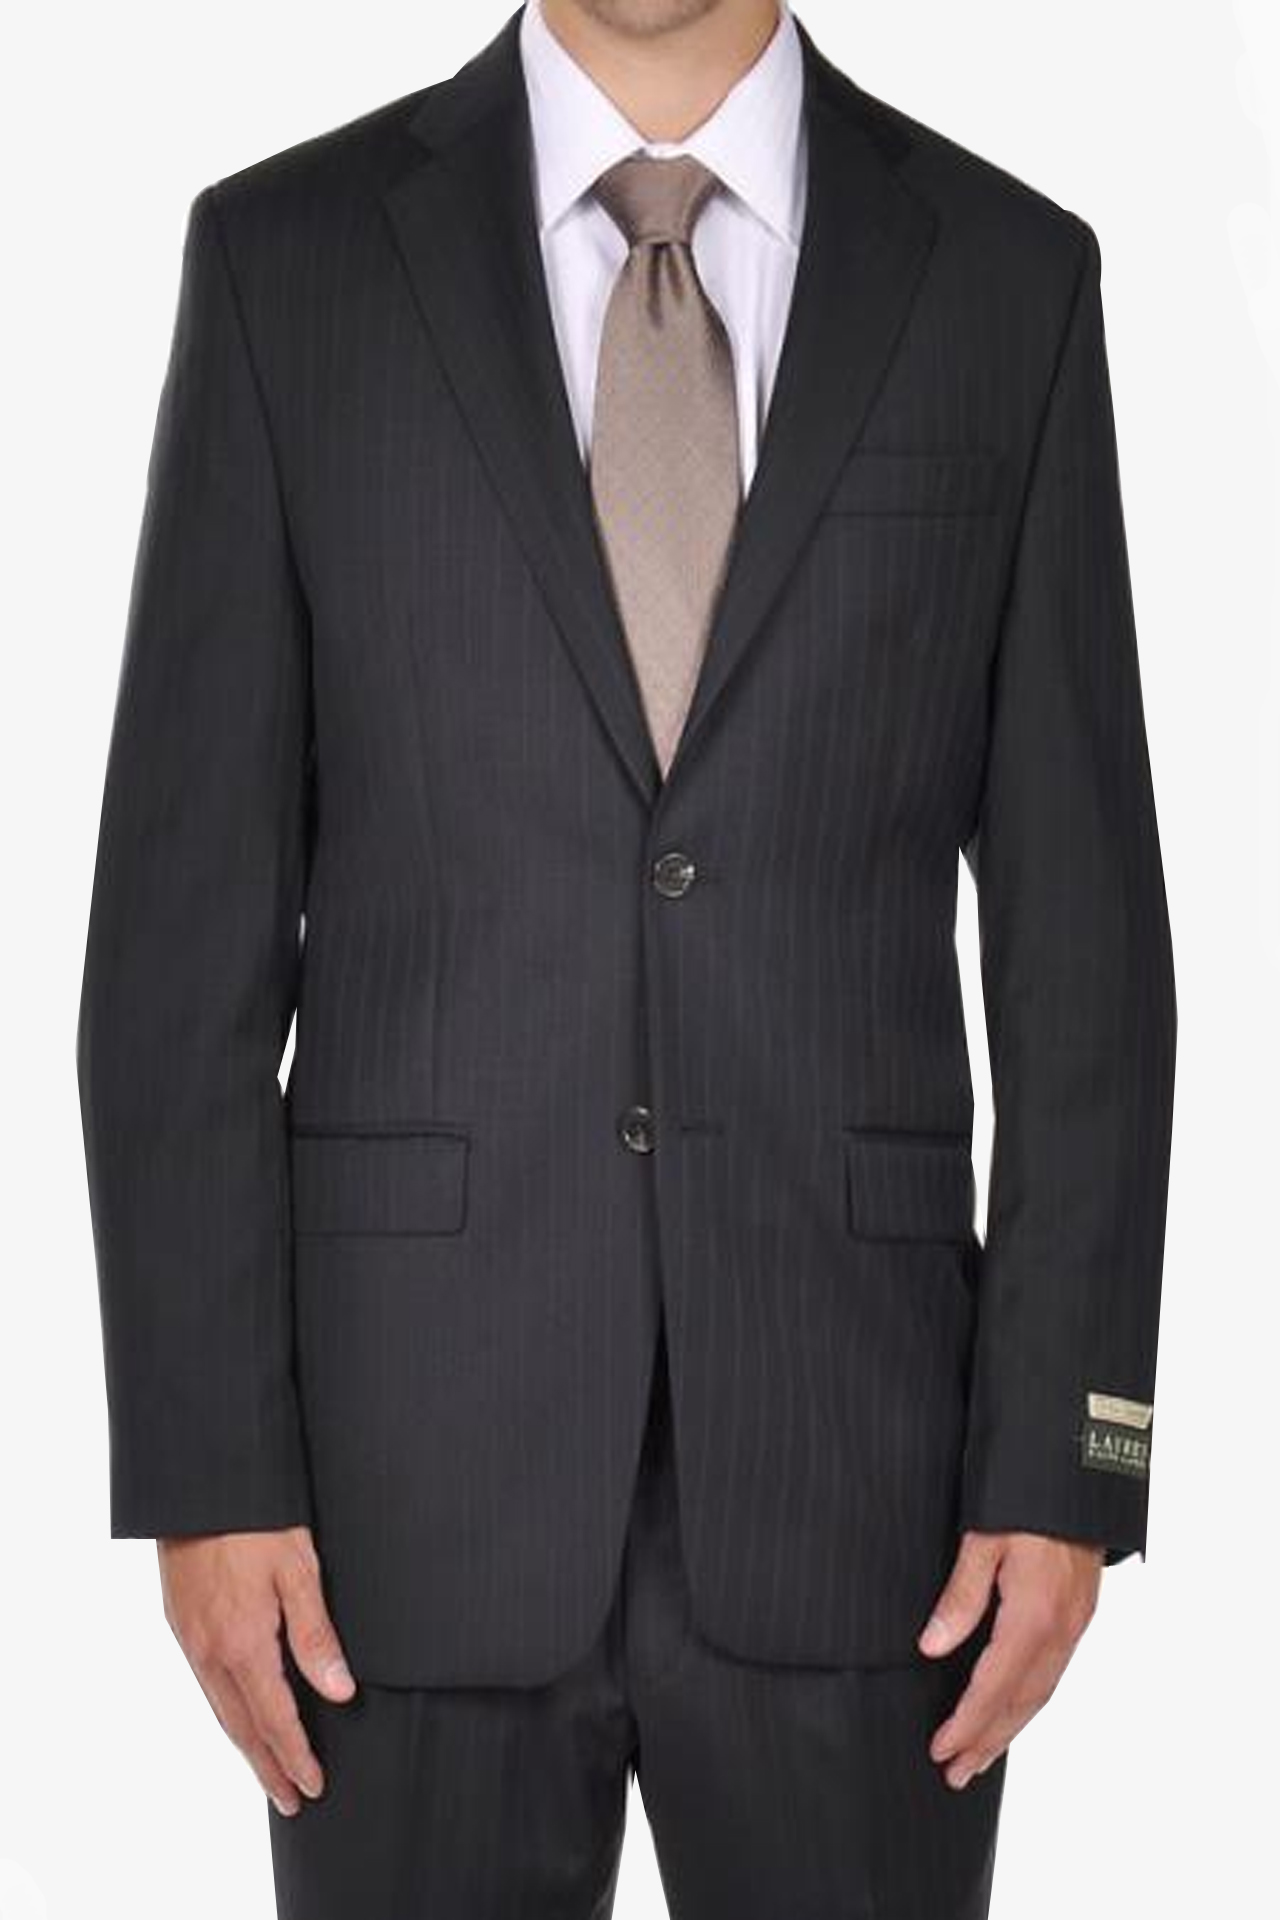 Navy Pintripe Dress Suit